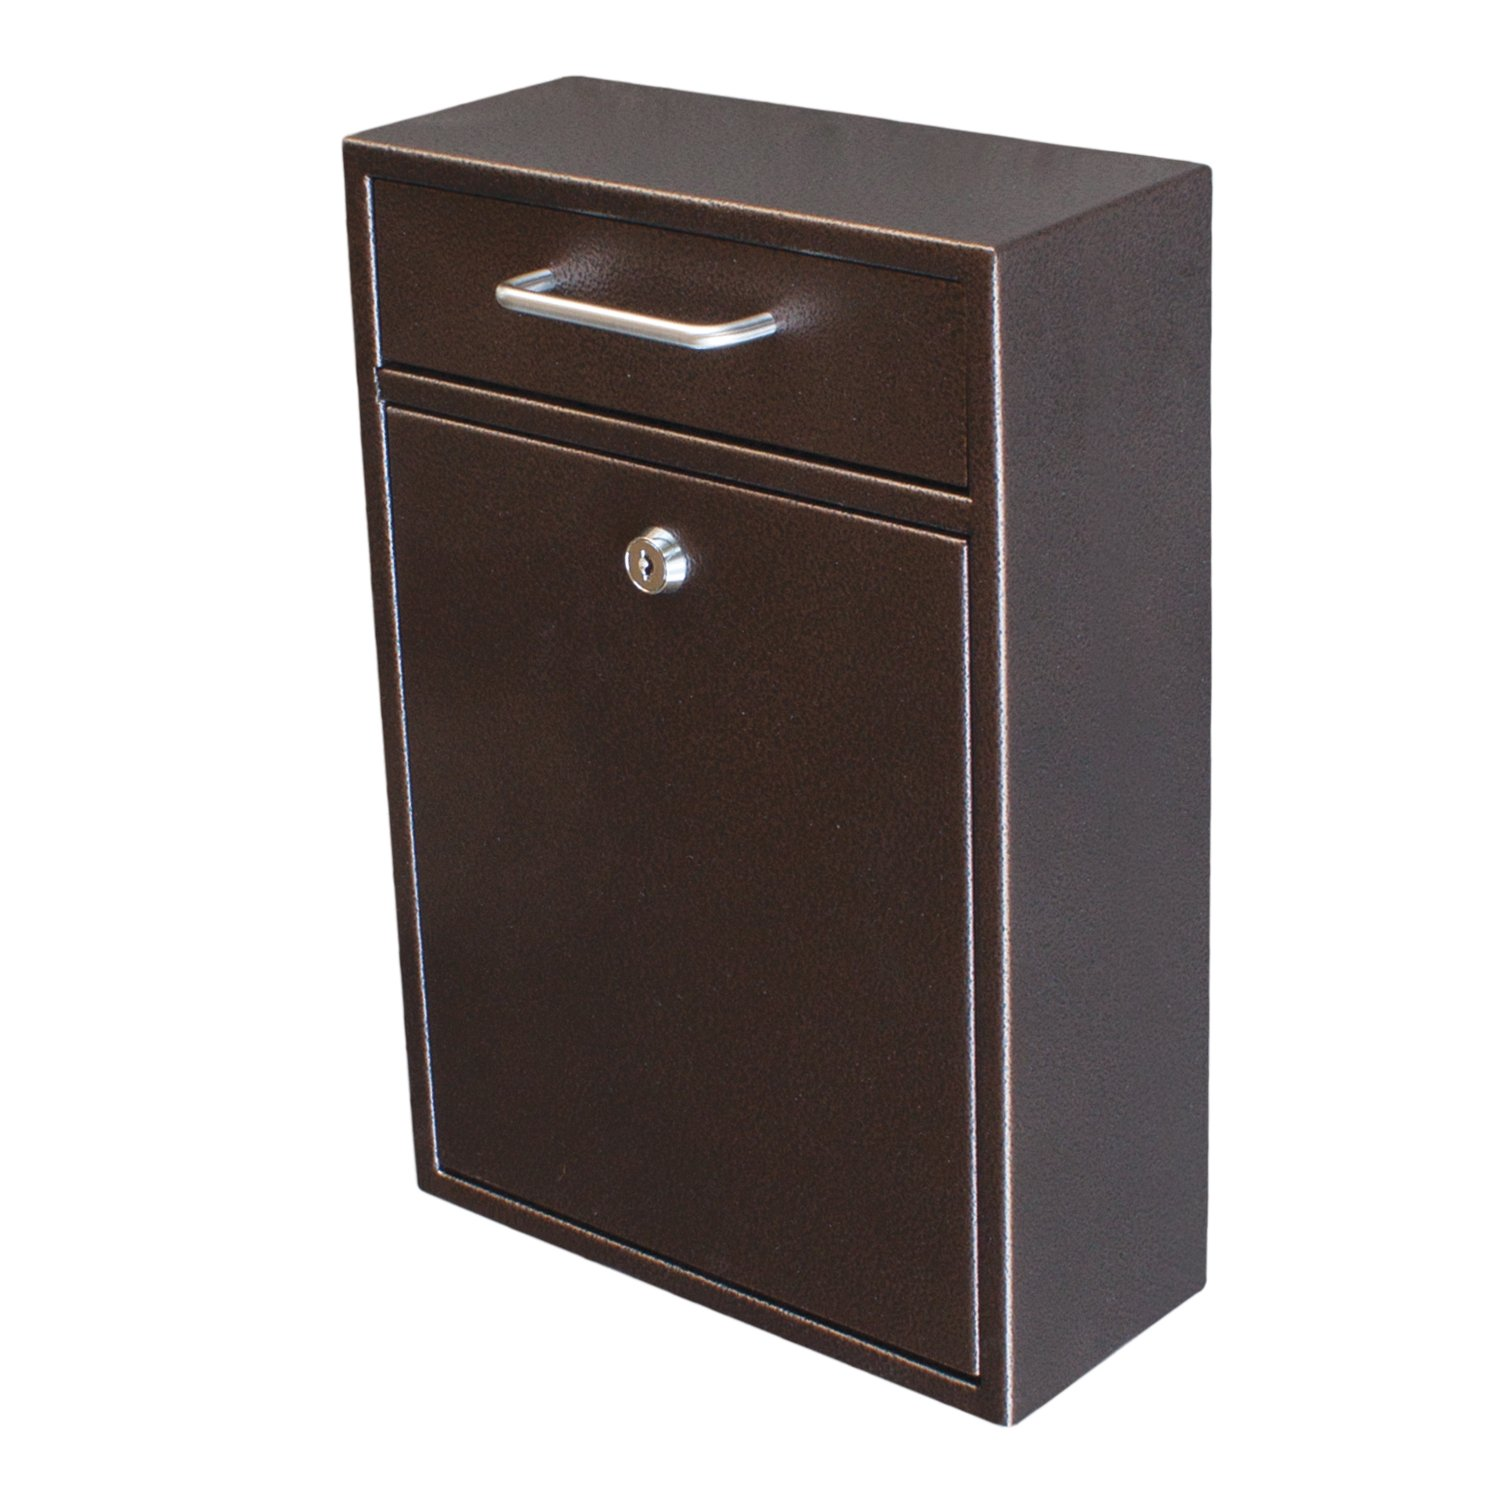 Mail Boss 7418 High Security Steel Locking Wall Mounted Mailbox - Office Drop Box - Comment Box - Letter Box - Deposit Box, Bronze